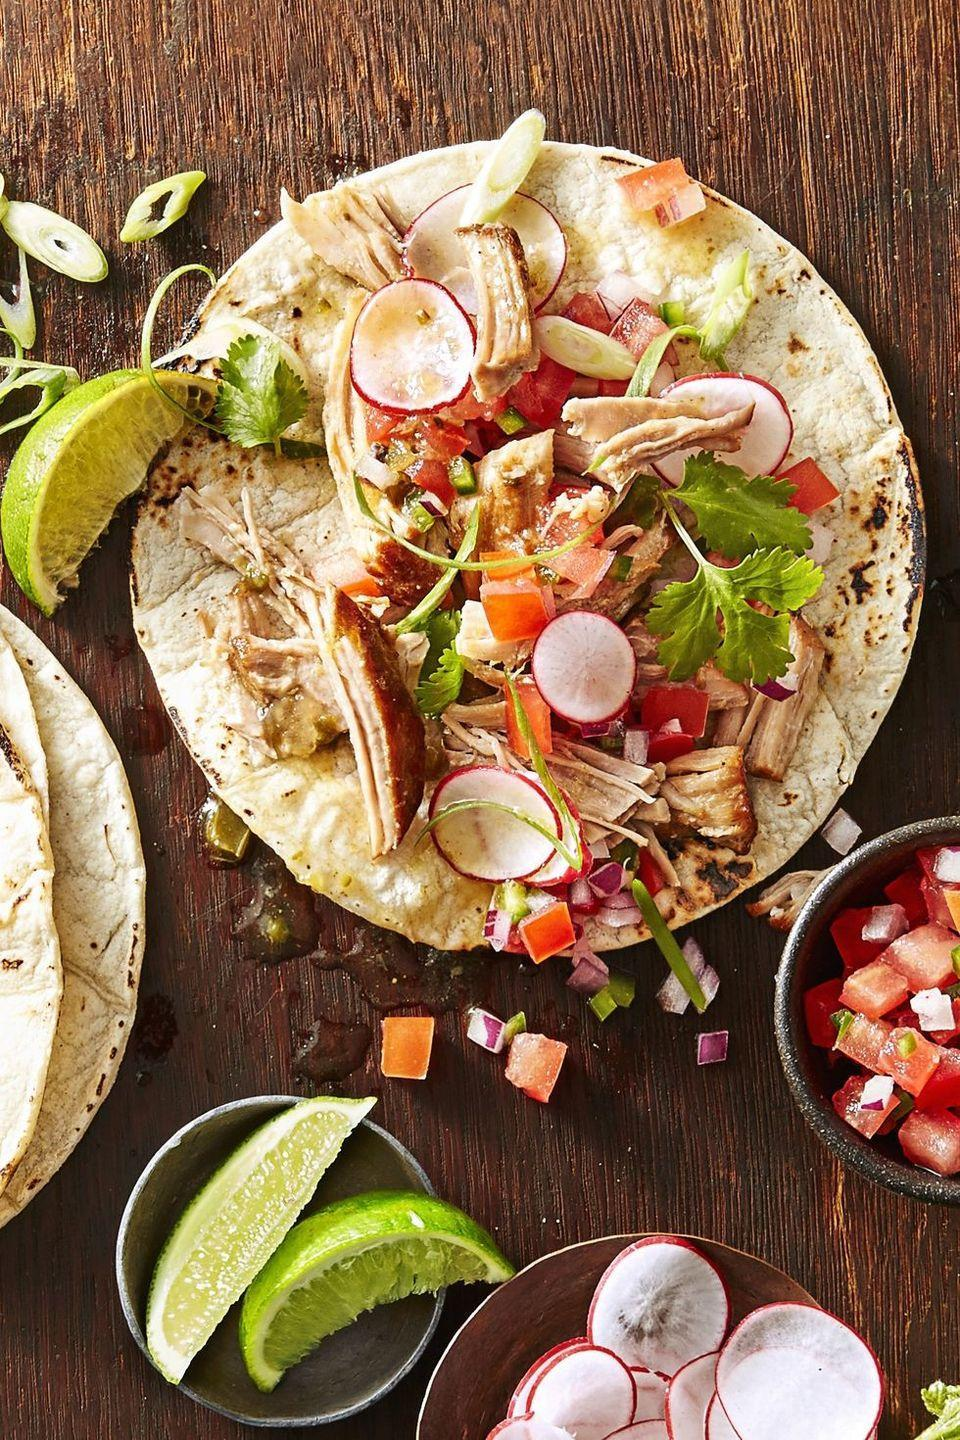 "<p>Don't worry, your slow-cooker will do the work for you in making a tender carnitas filling.</p><p><em><a href=""https://www.goodhousekeeping.com/food-recipes/a42403/carnitas-tacos-recipe/"" rel=""nofollow noopener"" target=""_blank"" data-ylk=""slk:Get the recipe for Carnitas Tacos »"" class=""link rapid-noclick-resp"">Get the recipe for Carnitas Tacos » </a></em></p>"